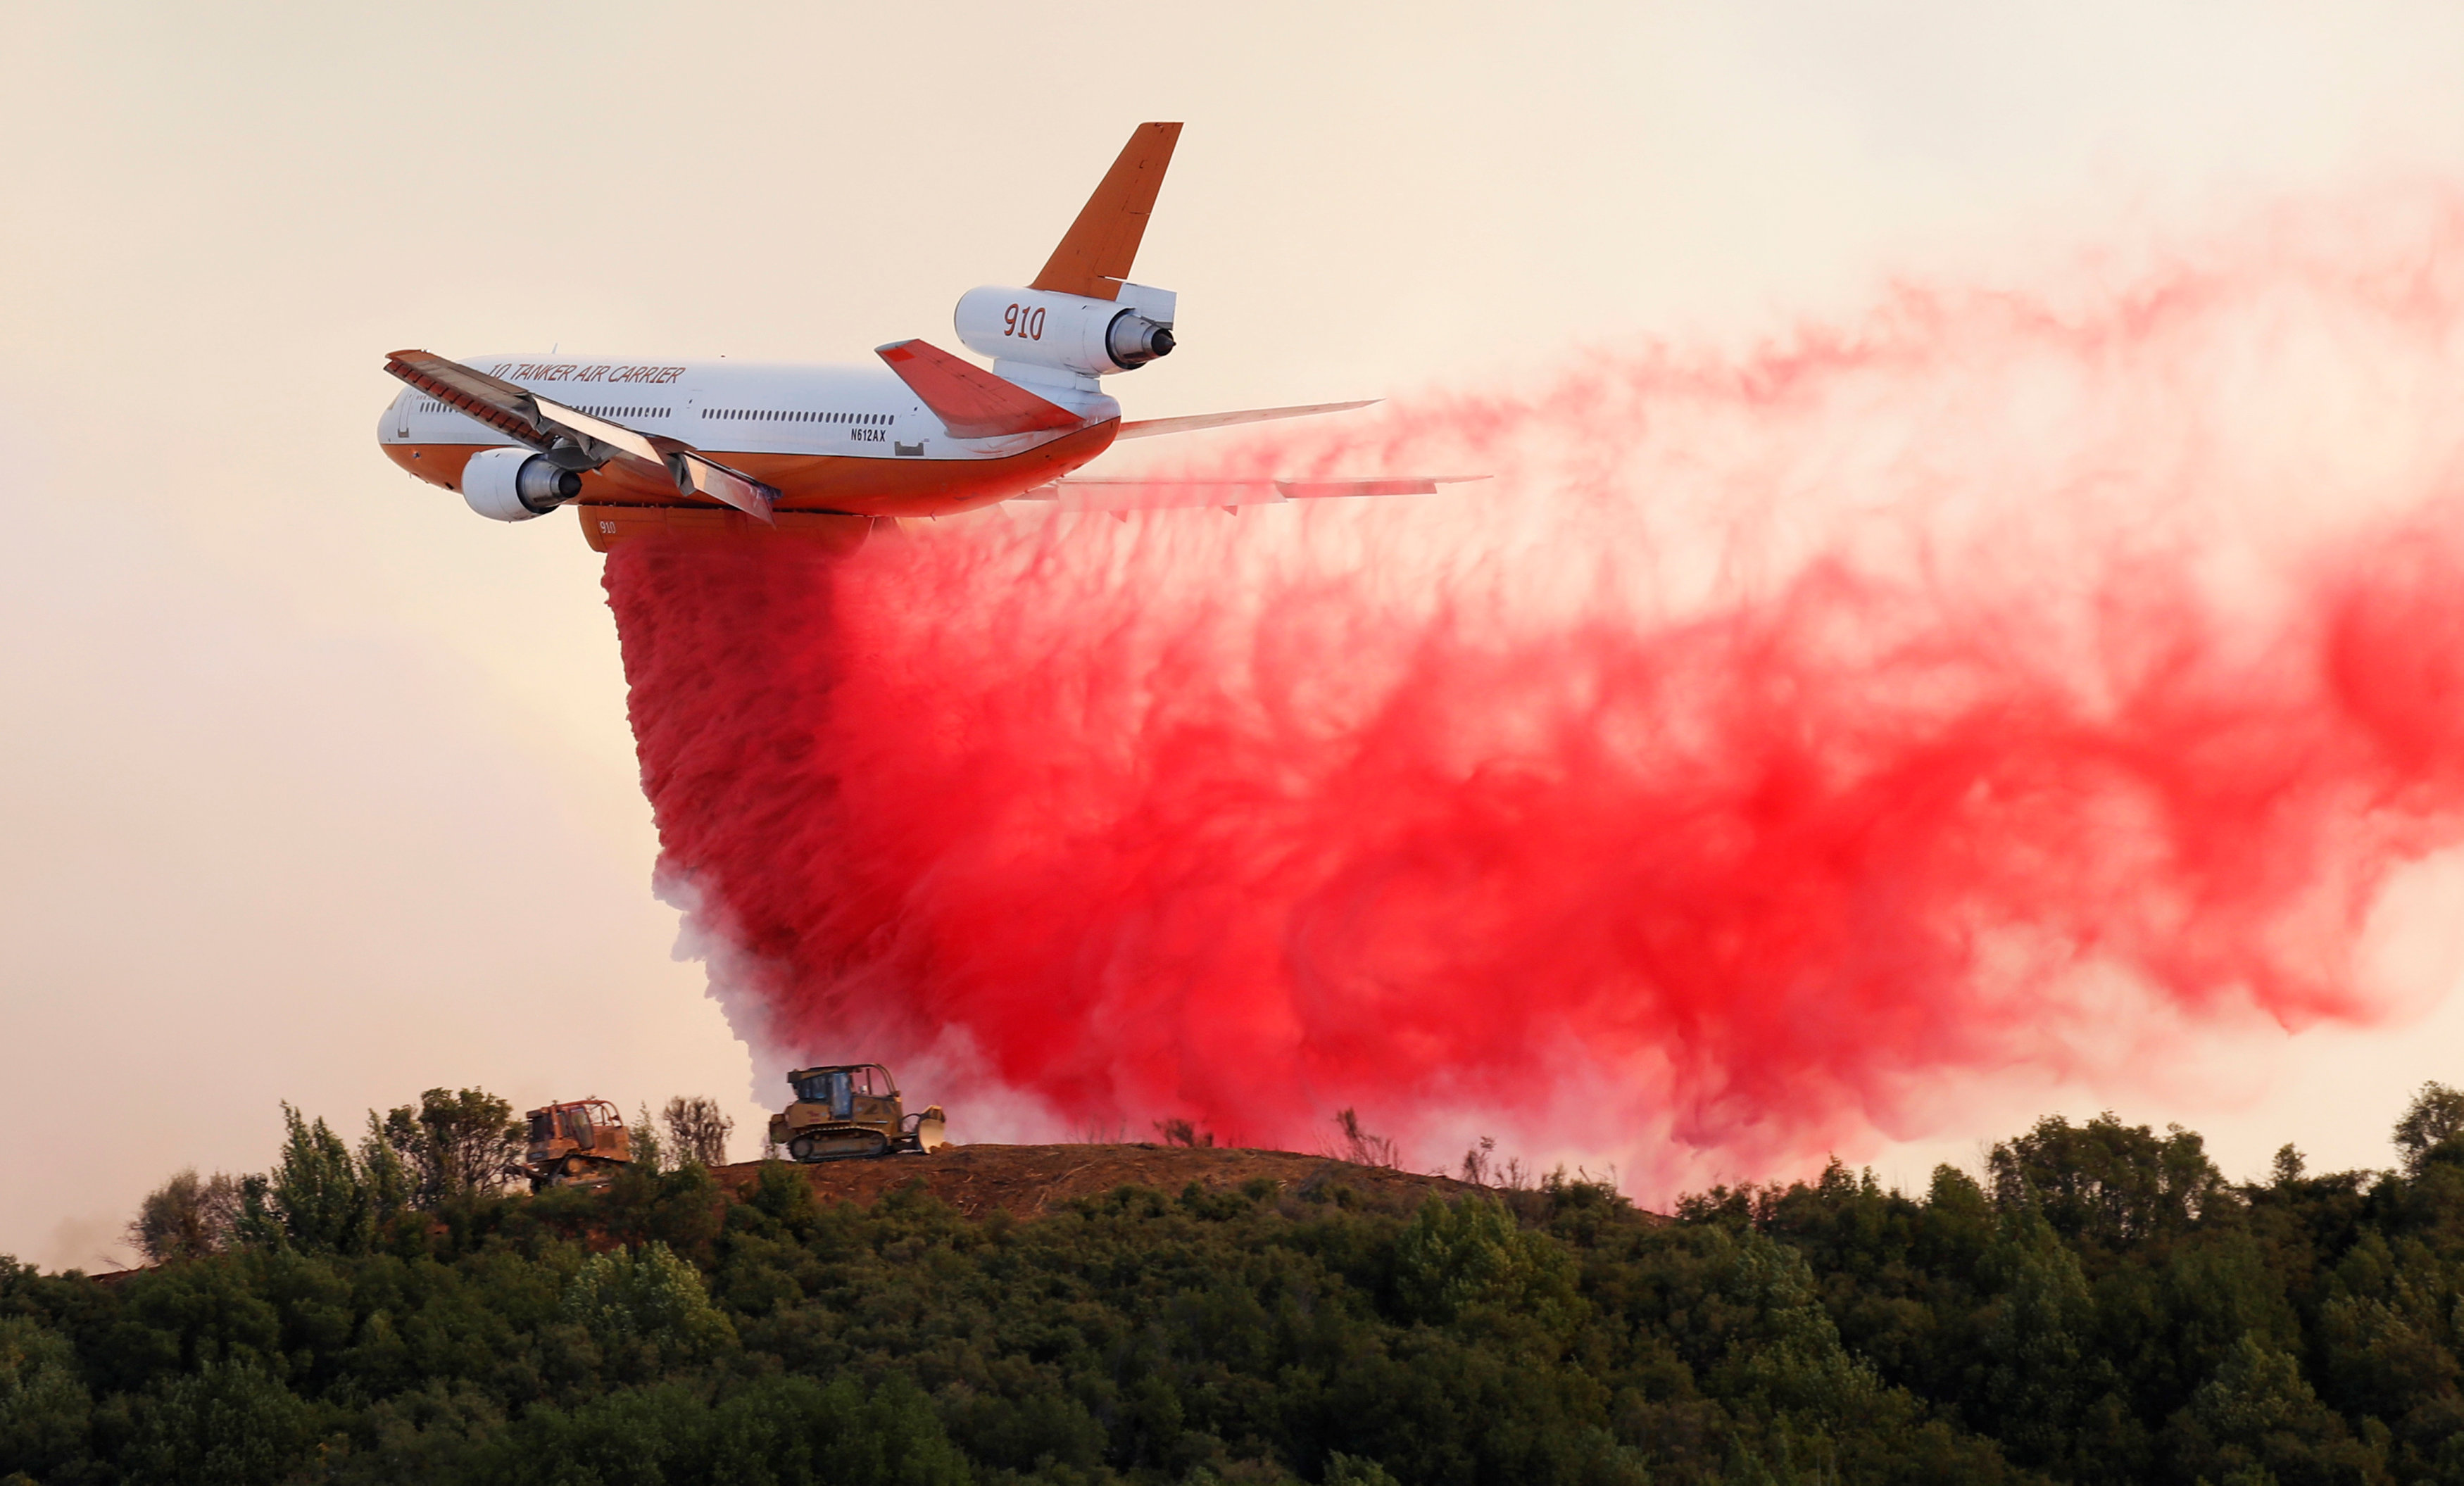 A DC-10 air tanker drops fire retardant along the crest of a hill to protect the two bulldozers below that were cutting fire lines at the River Fire (Mendocino Complex) near Lakeport, California, U.S. August 2, 2018. REUTERS/Fred Greaves